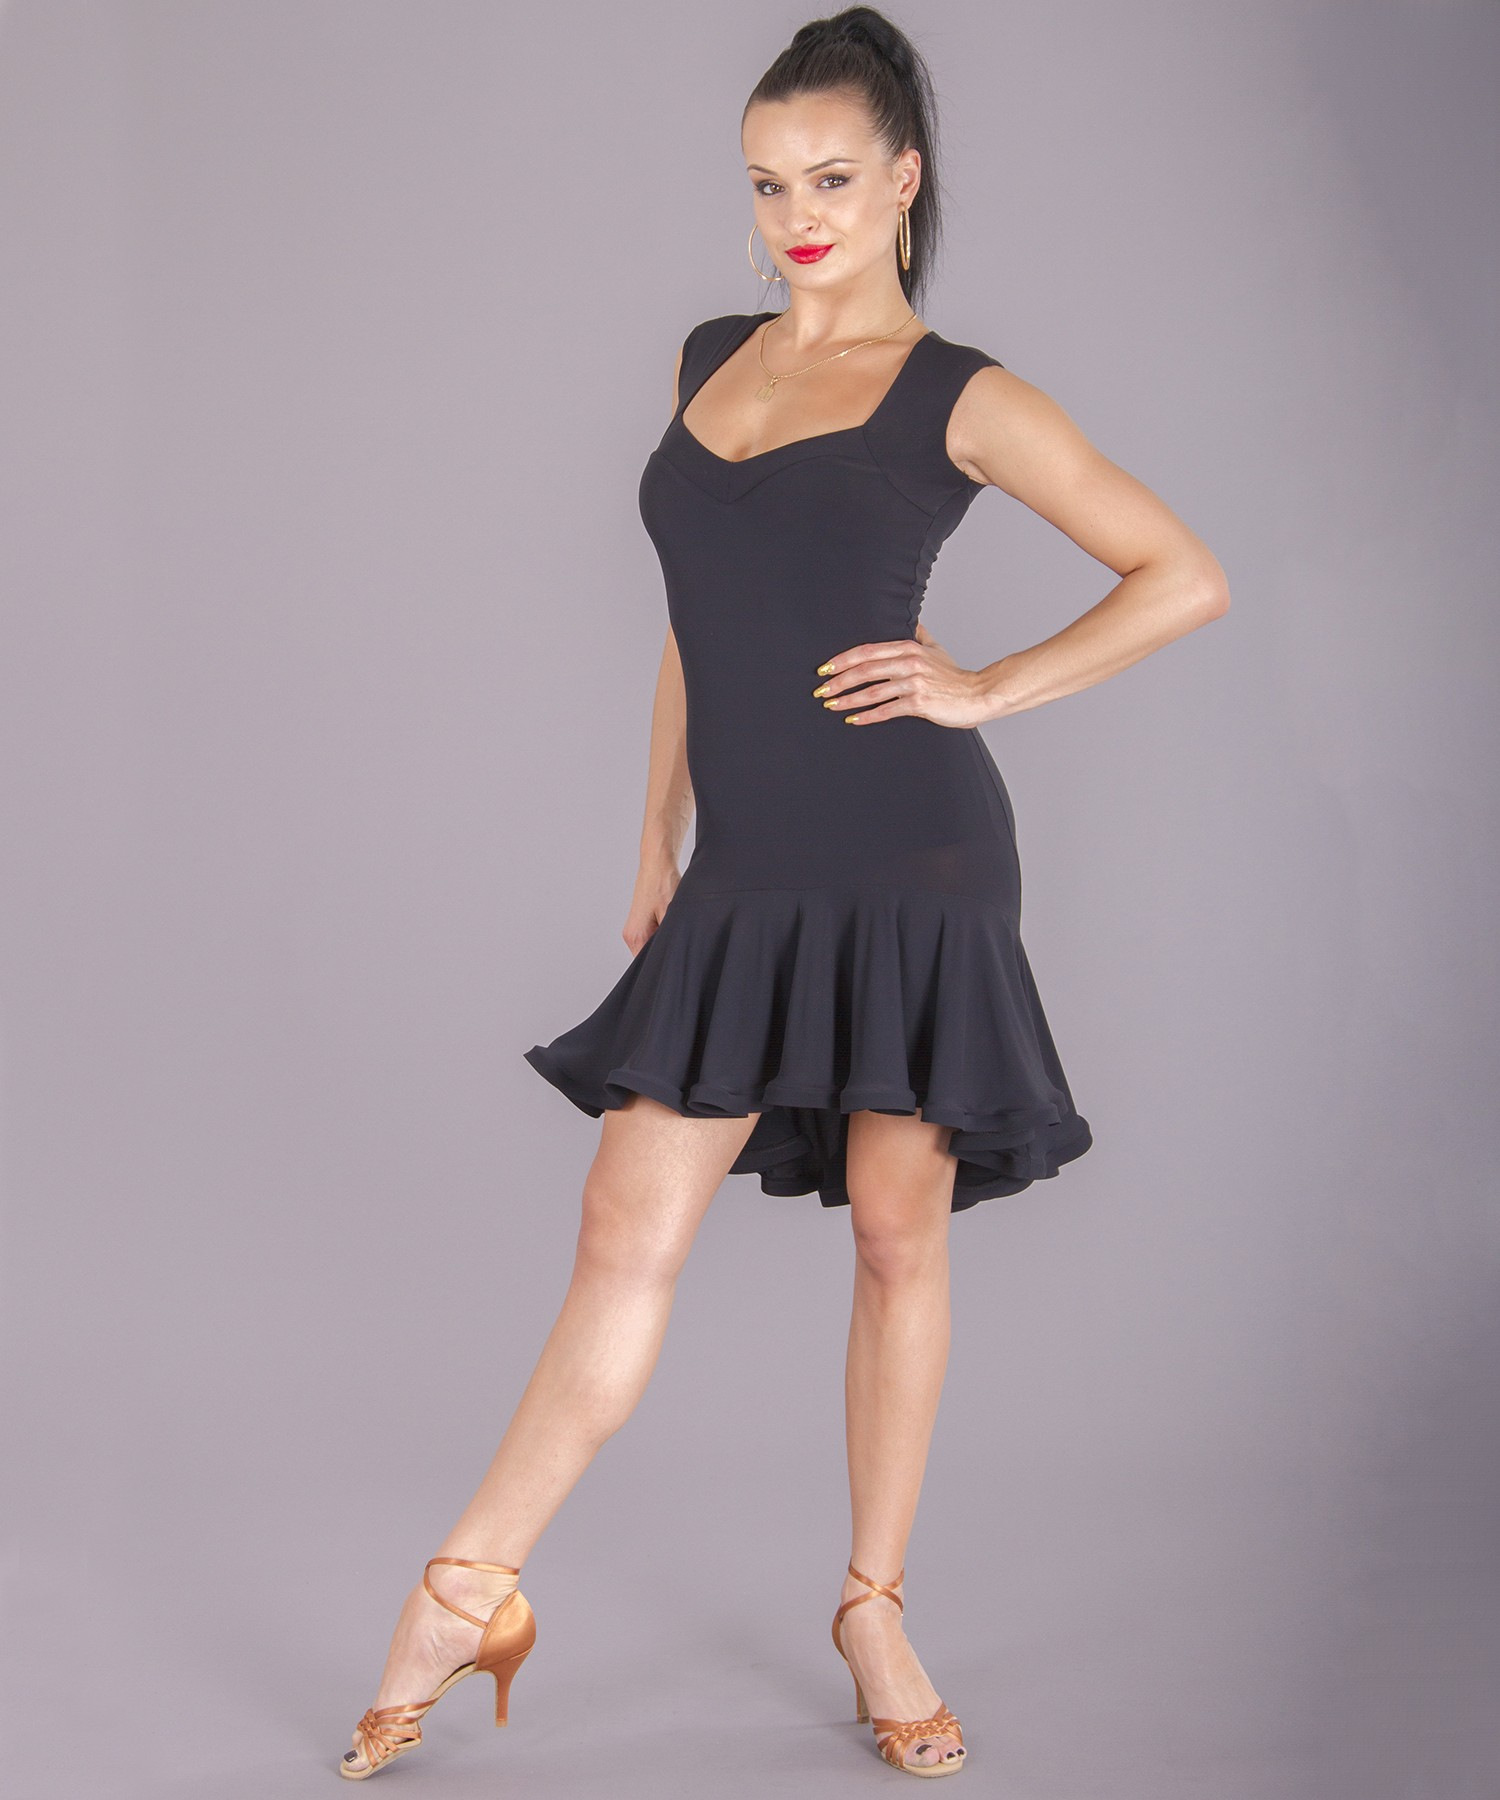 5654950520906 Women's Dresses, DSI London, 3253 Carmelita Crepe Dress, $279.00, from  VEdance, the very best in ballroom and Latin dance shoes and dancewear.